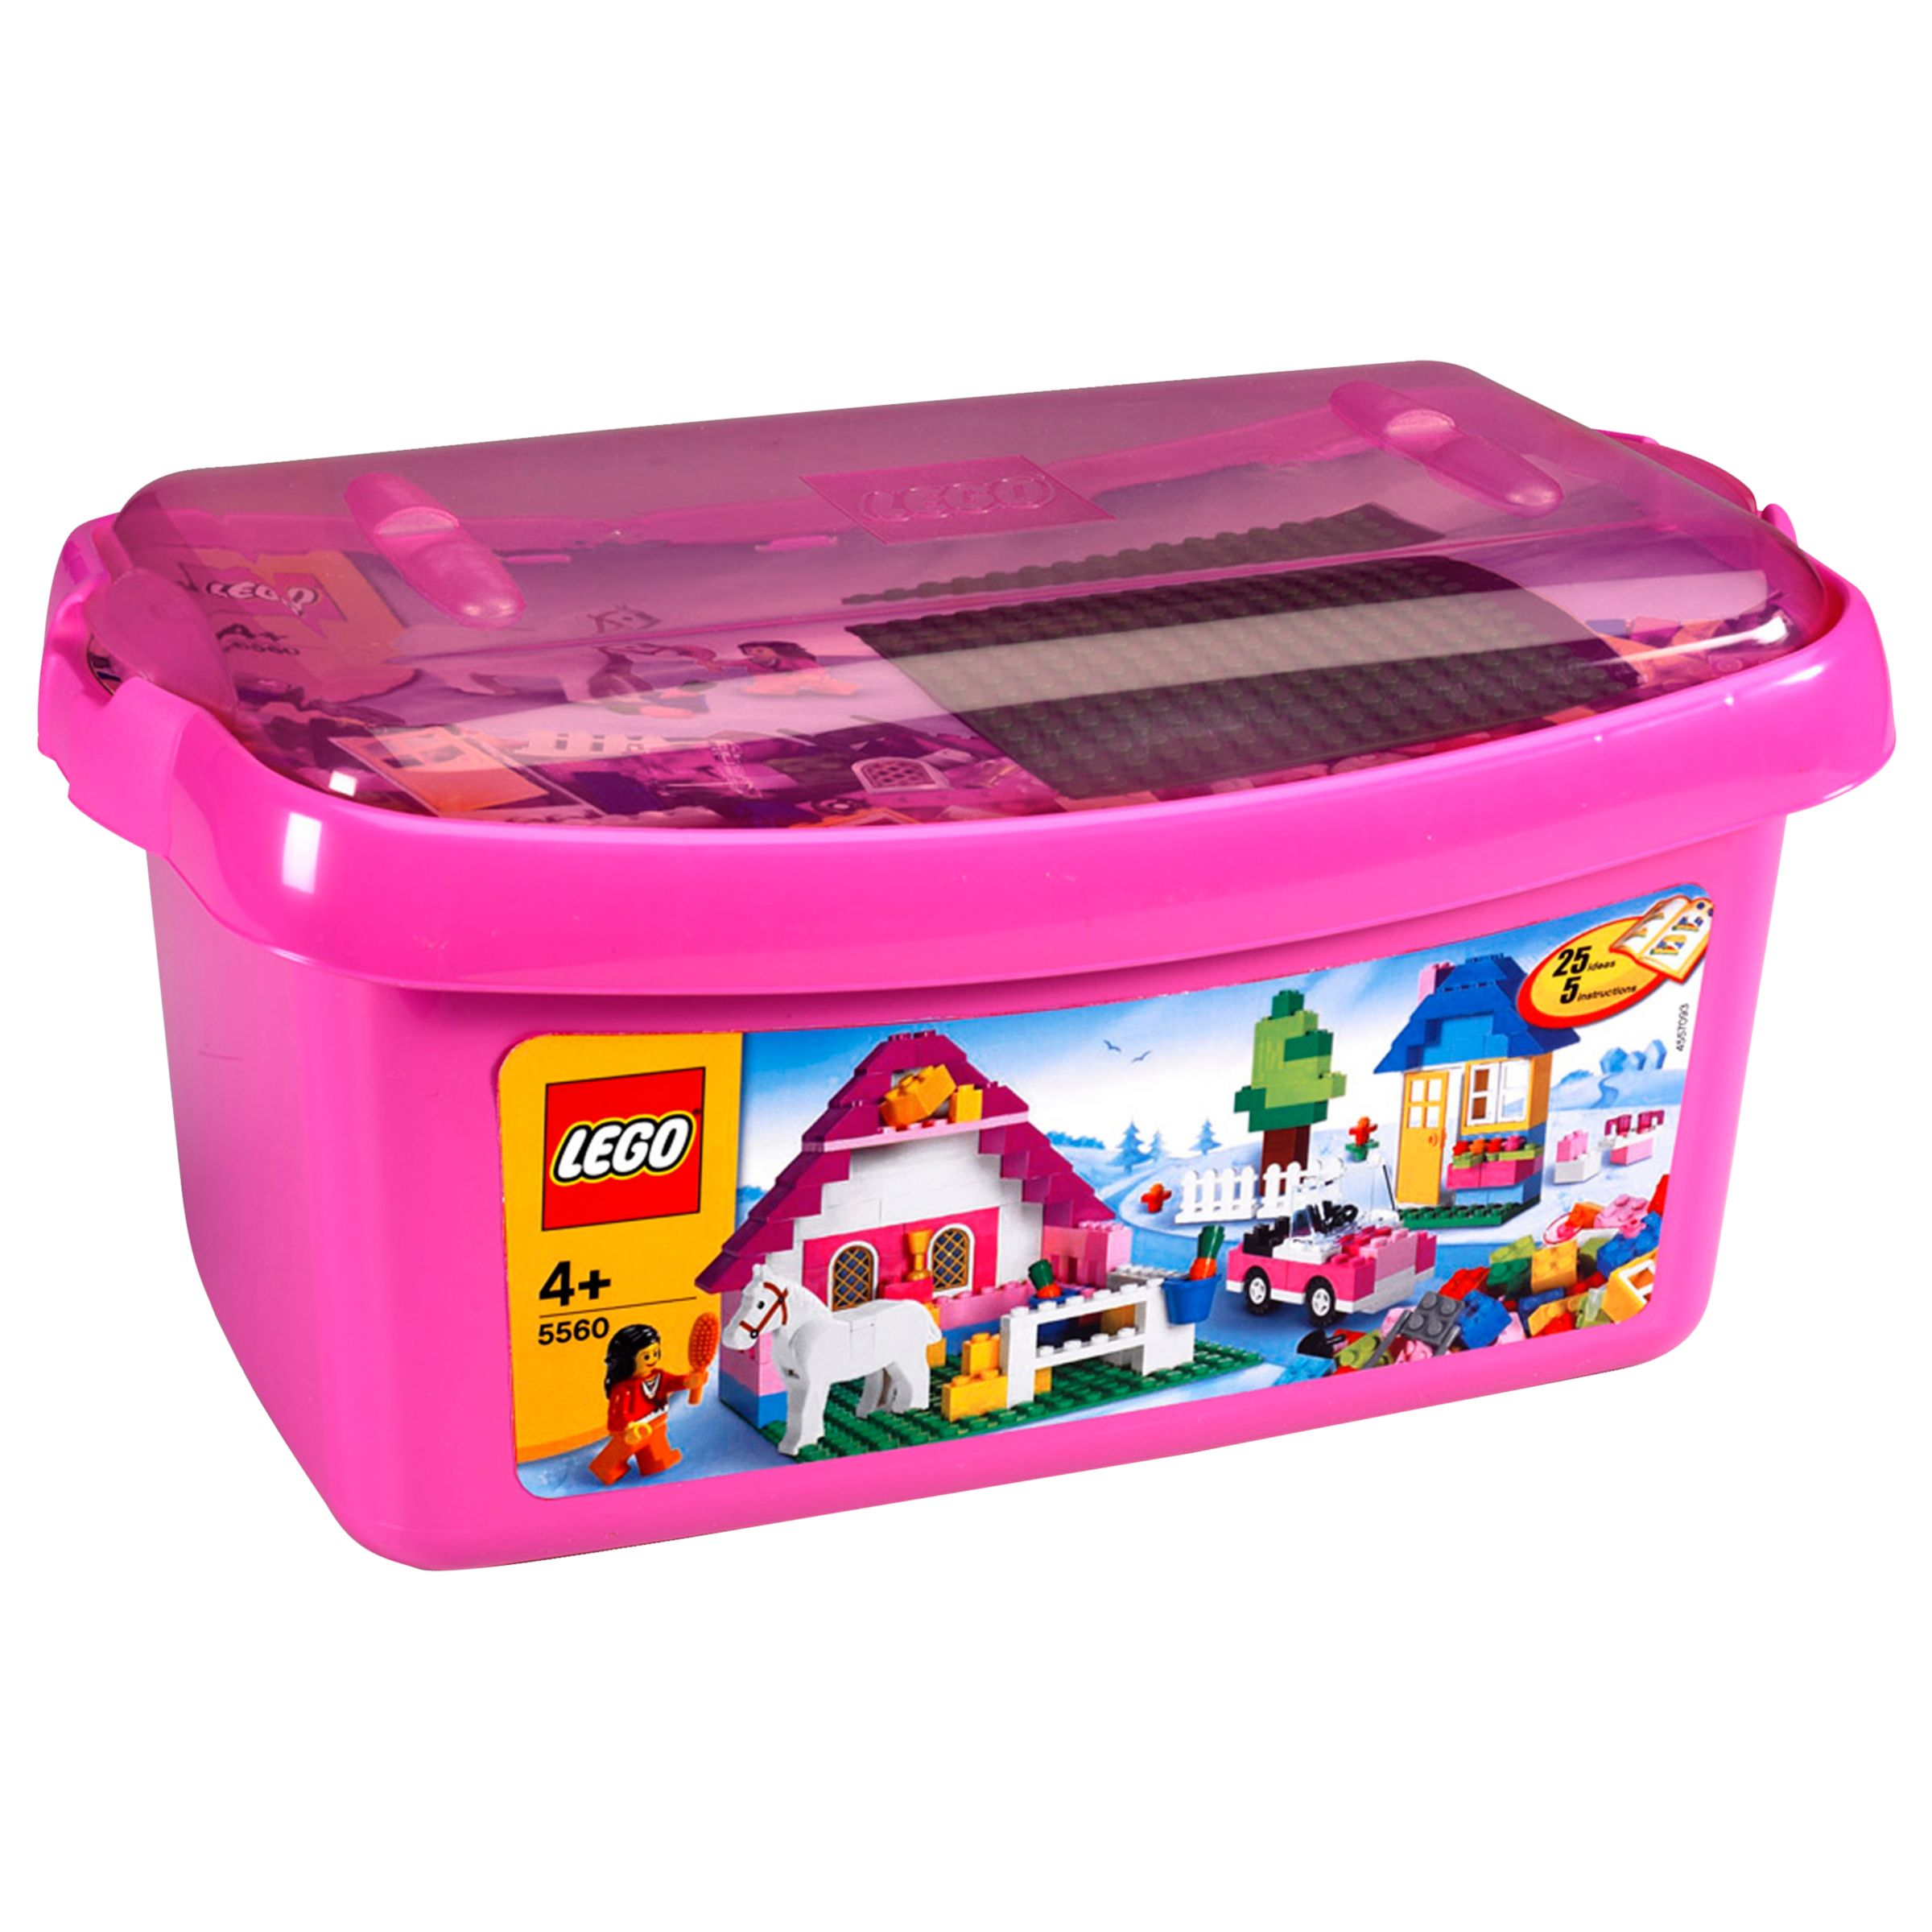 Lego Large Brick Box, Pink